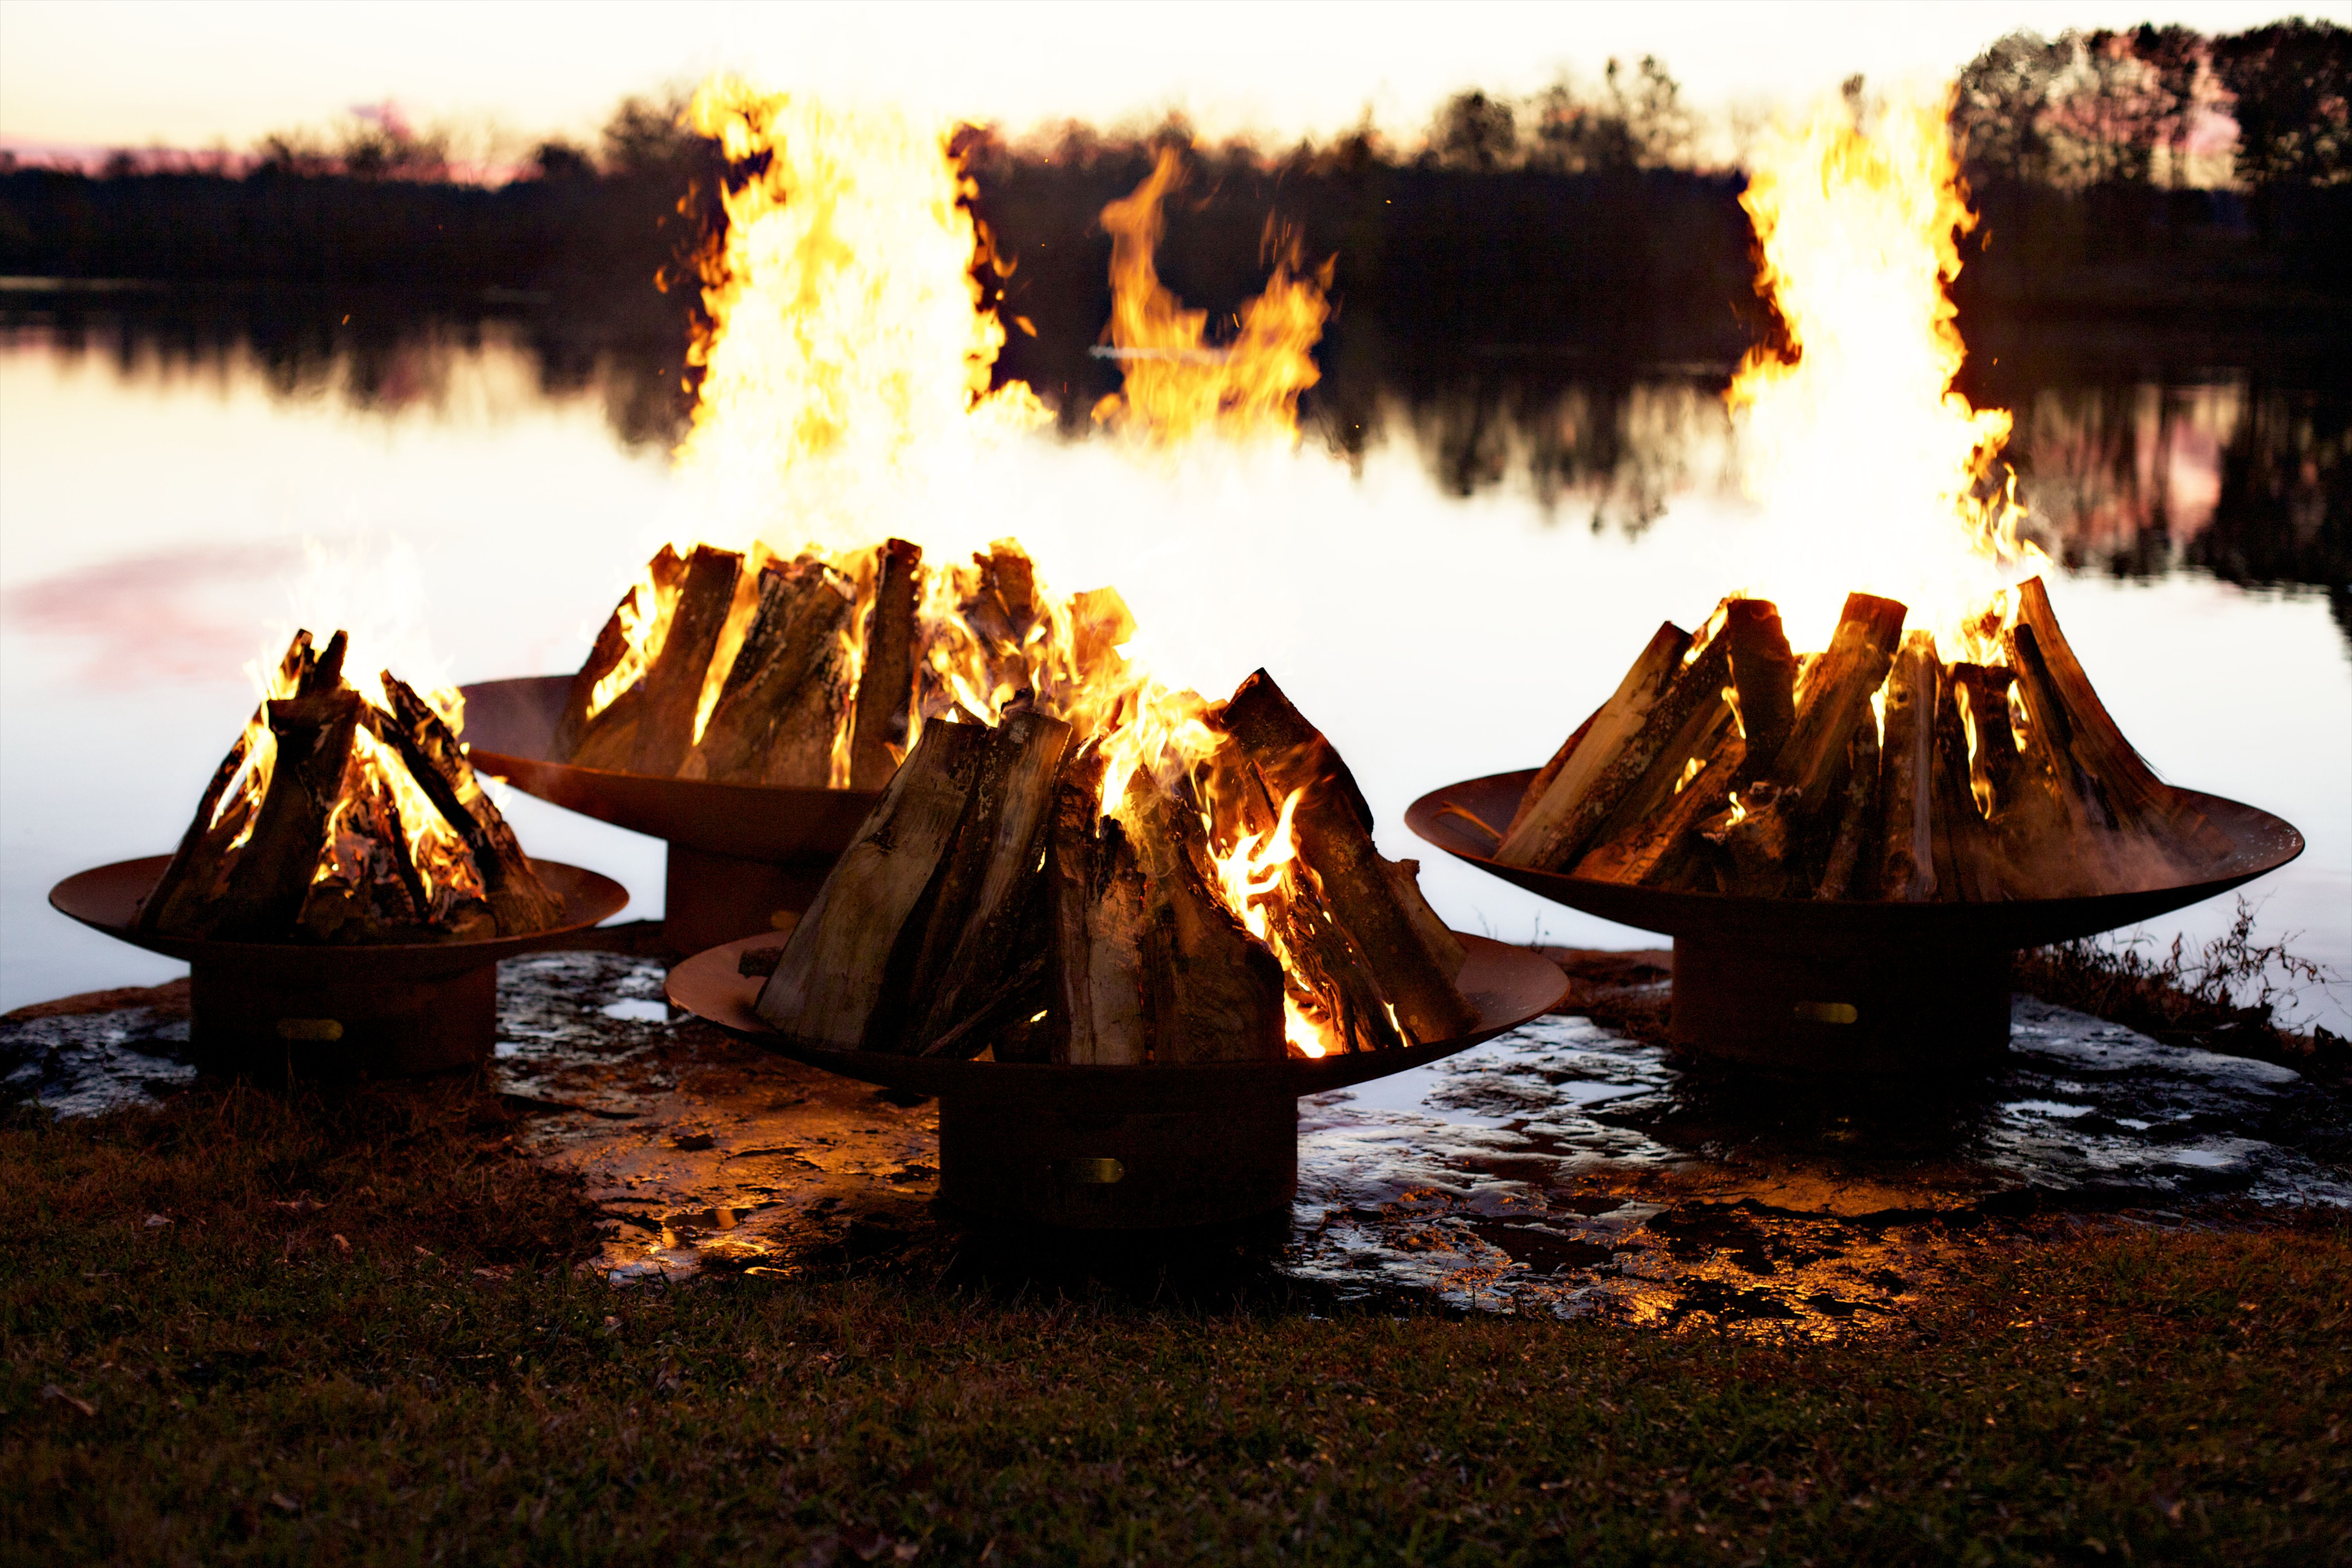 37371d14abbf38b1a2e05024894417a3 Top Result 50 New 36 Fire Pit Image 2018 Kgit4